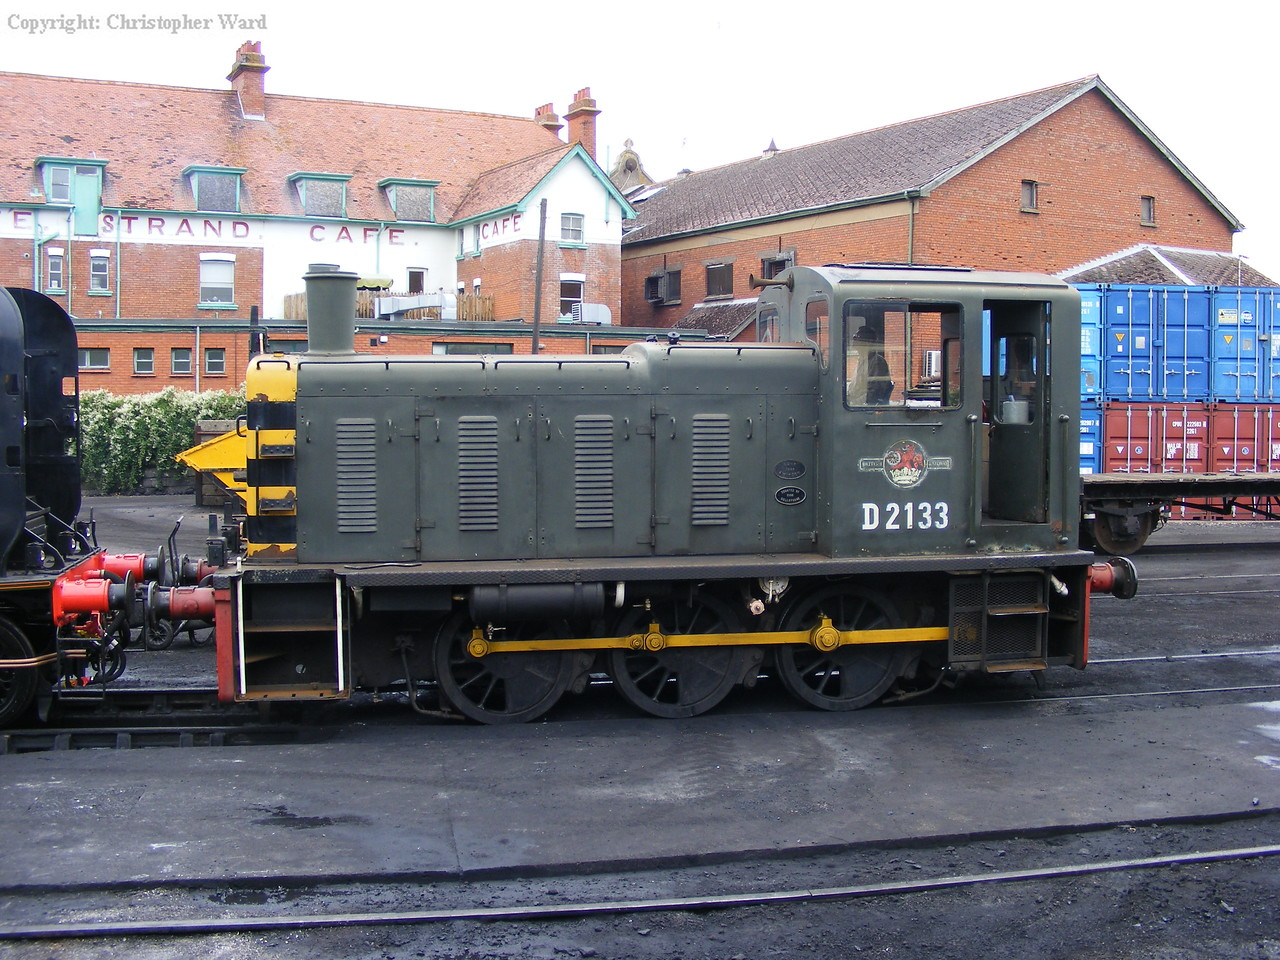 The class 03 engaged in shunting at the resort town